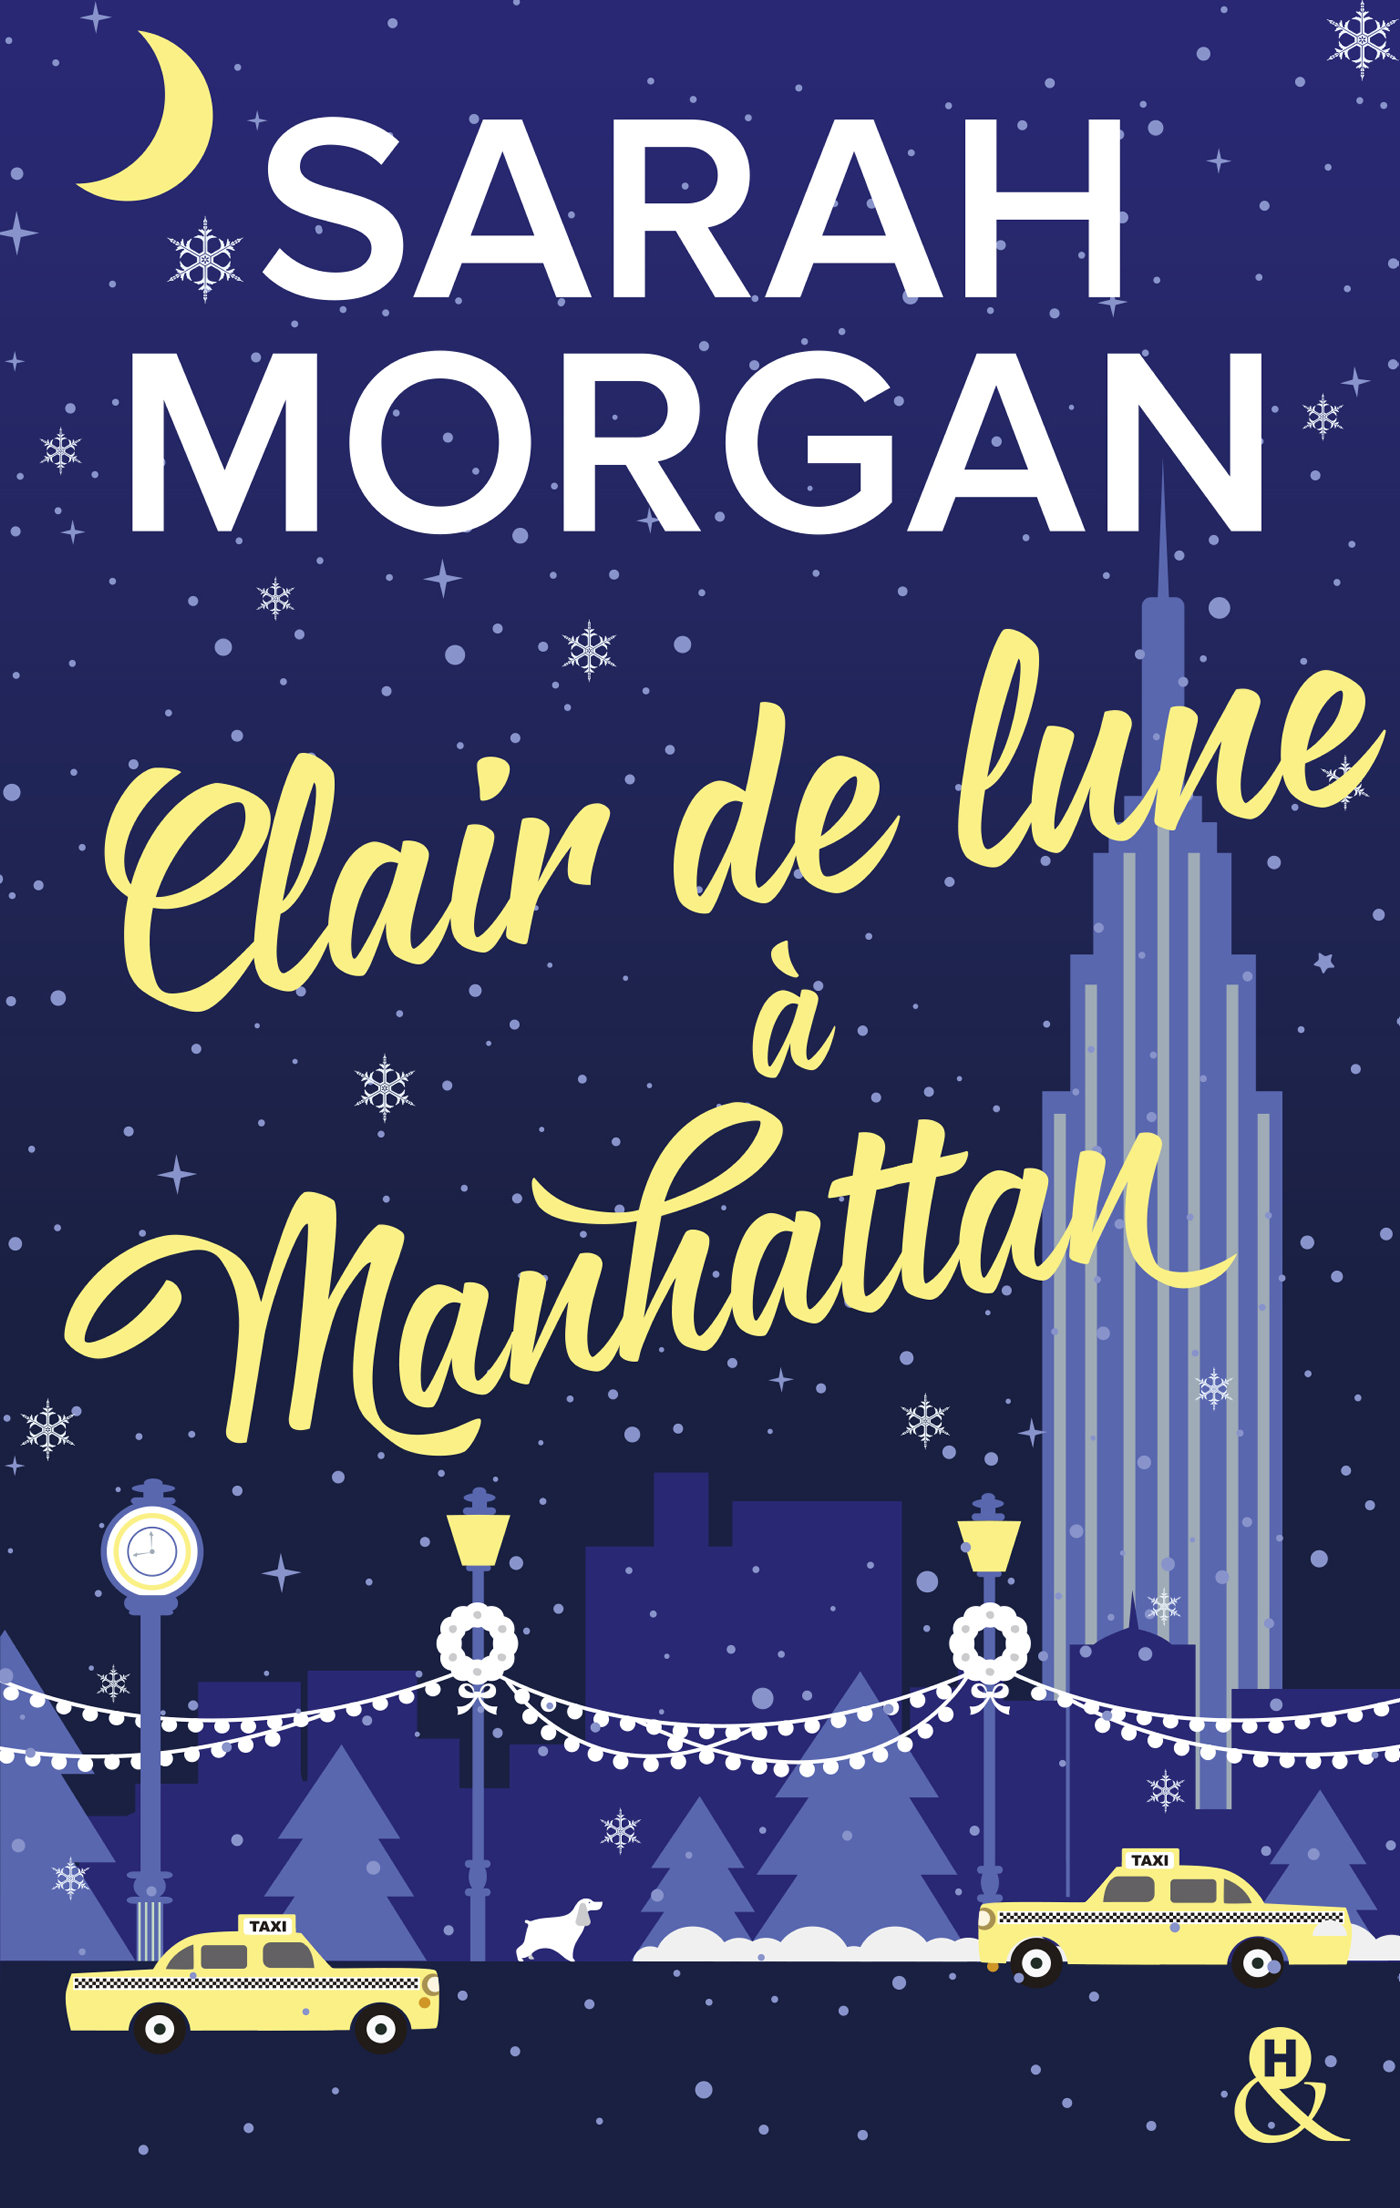 Clair de lune à Manhattan